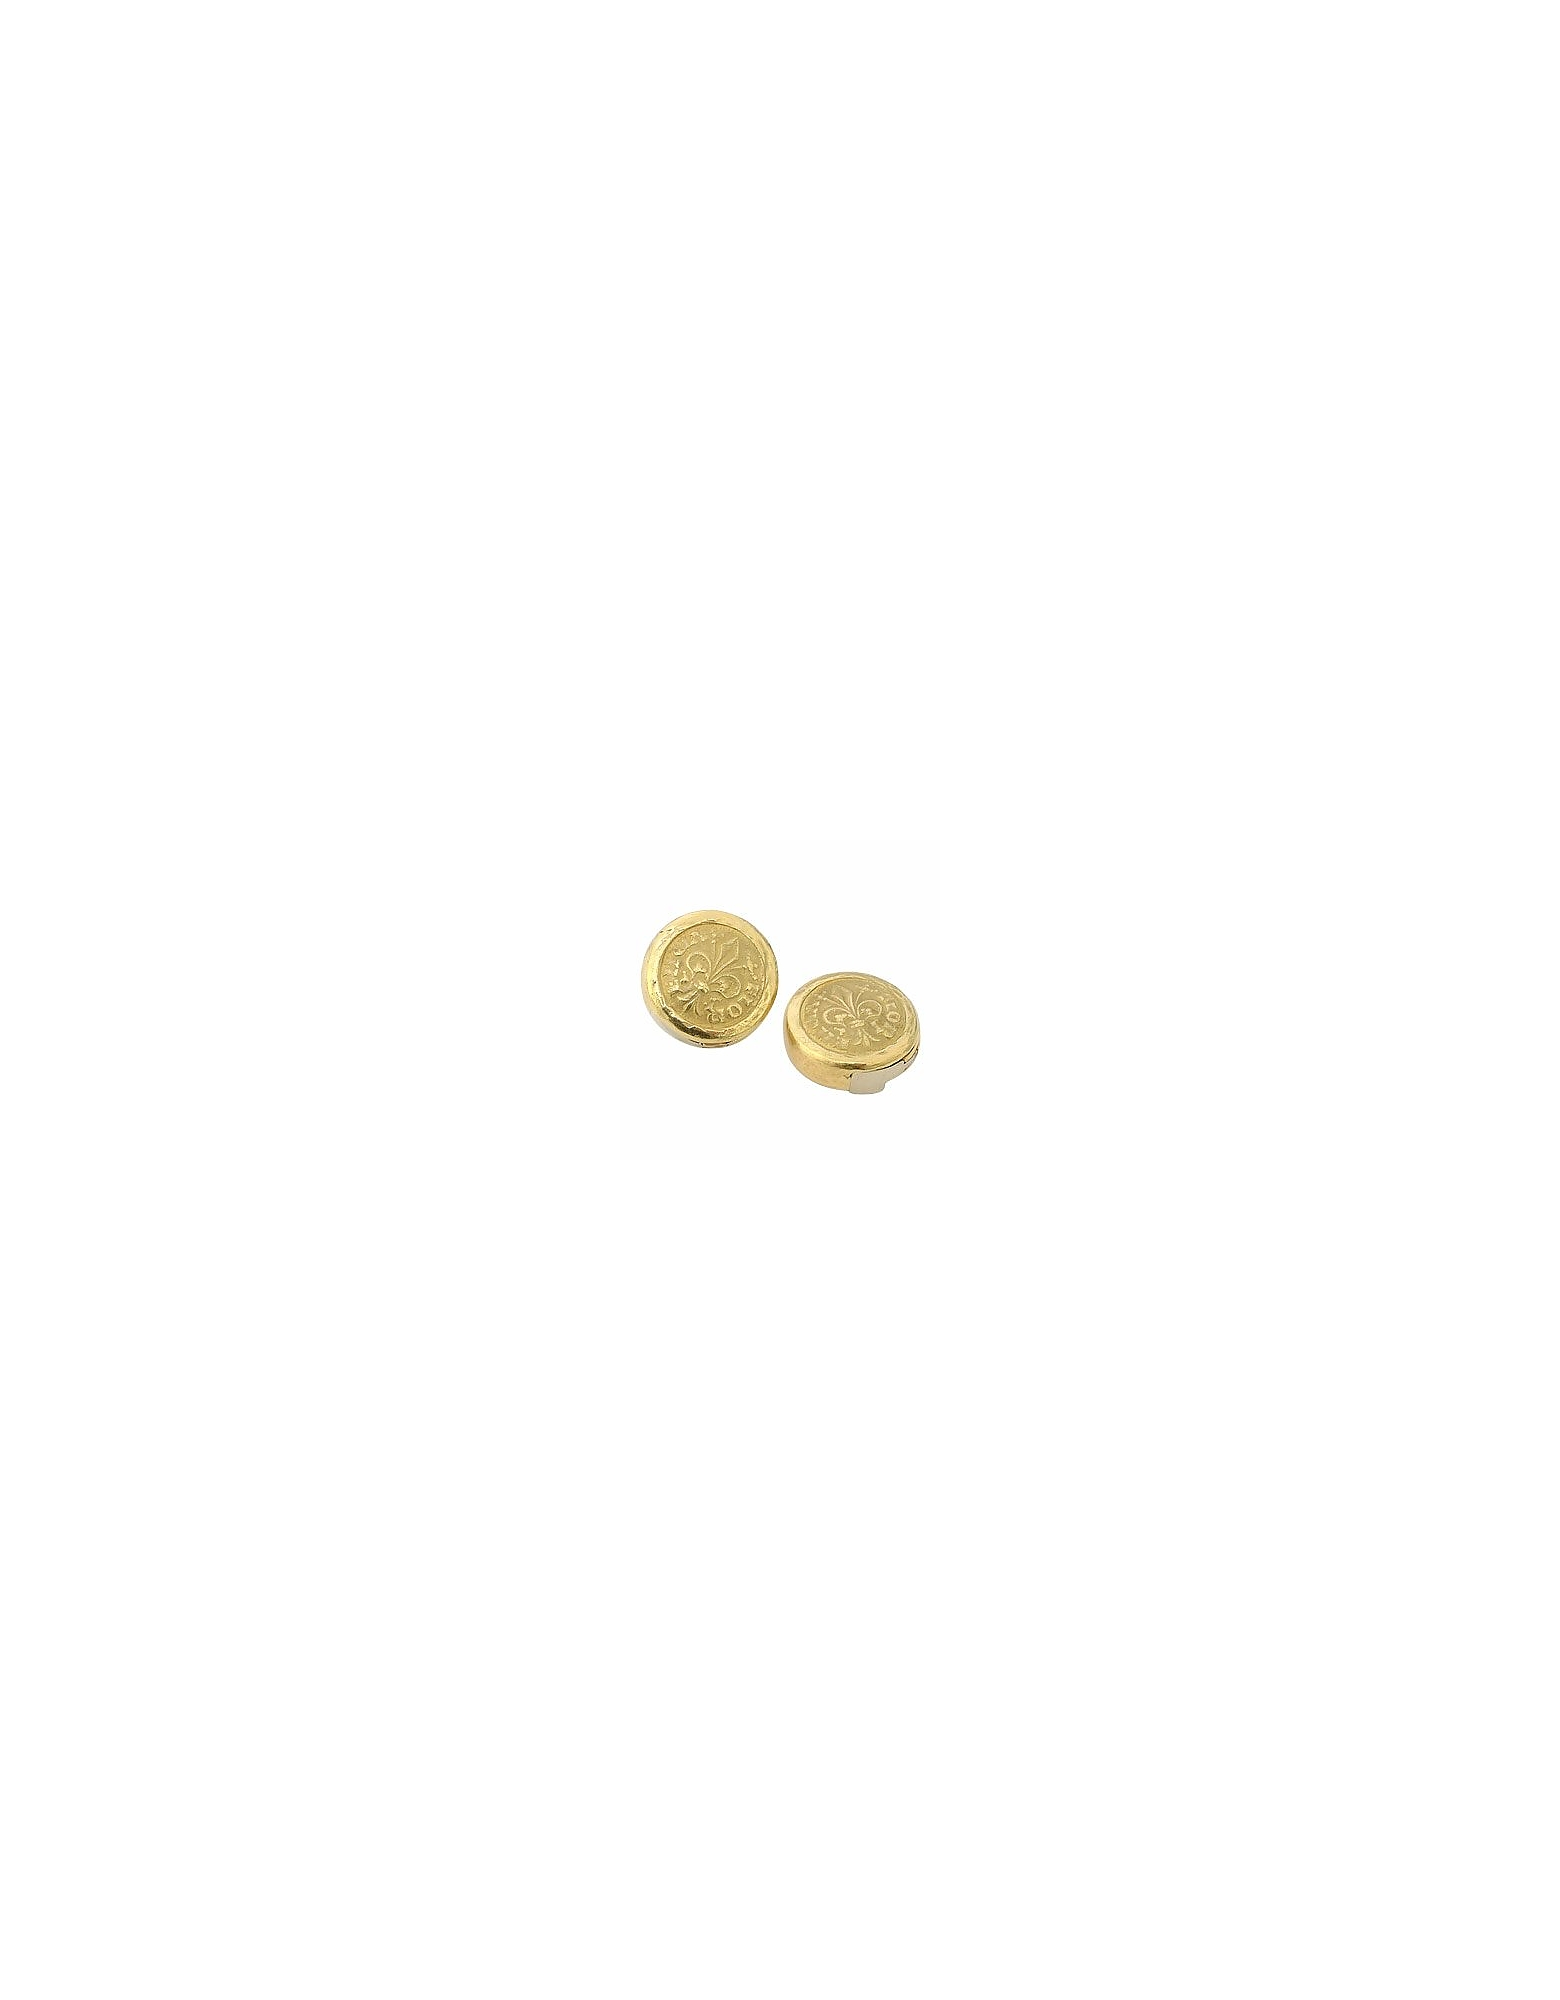 Torrini Button Covers, Fiorino - Fleur-de-Lis 18K Yellow Gold Button Covers